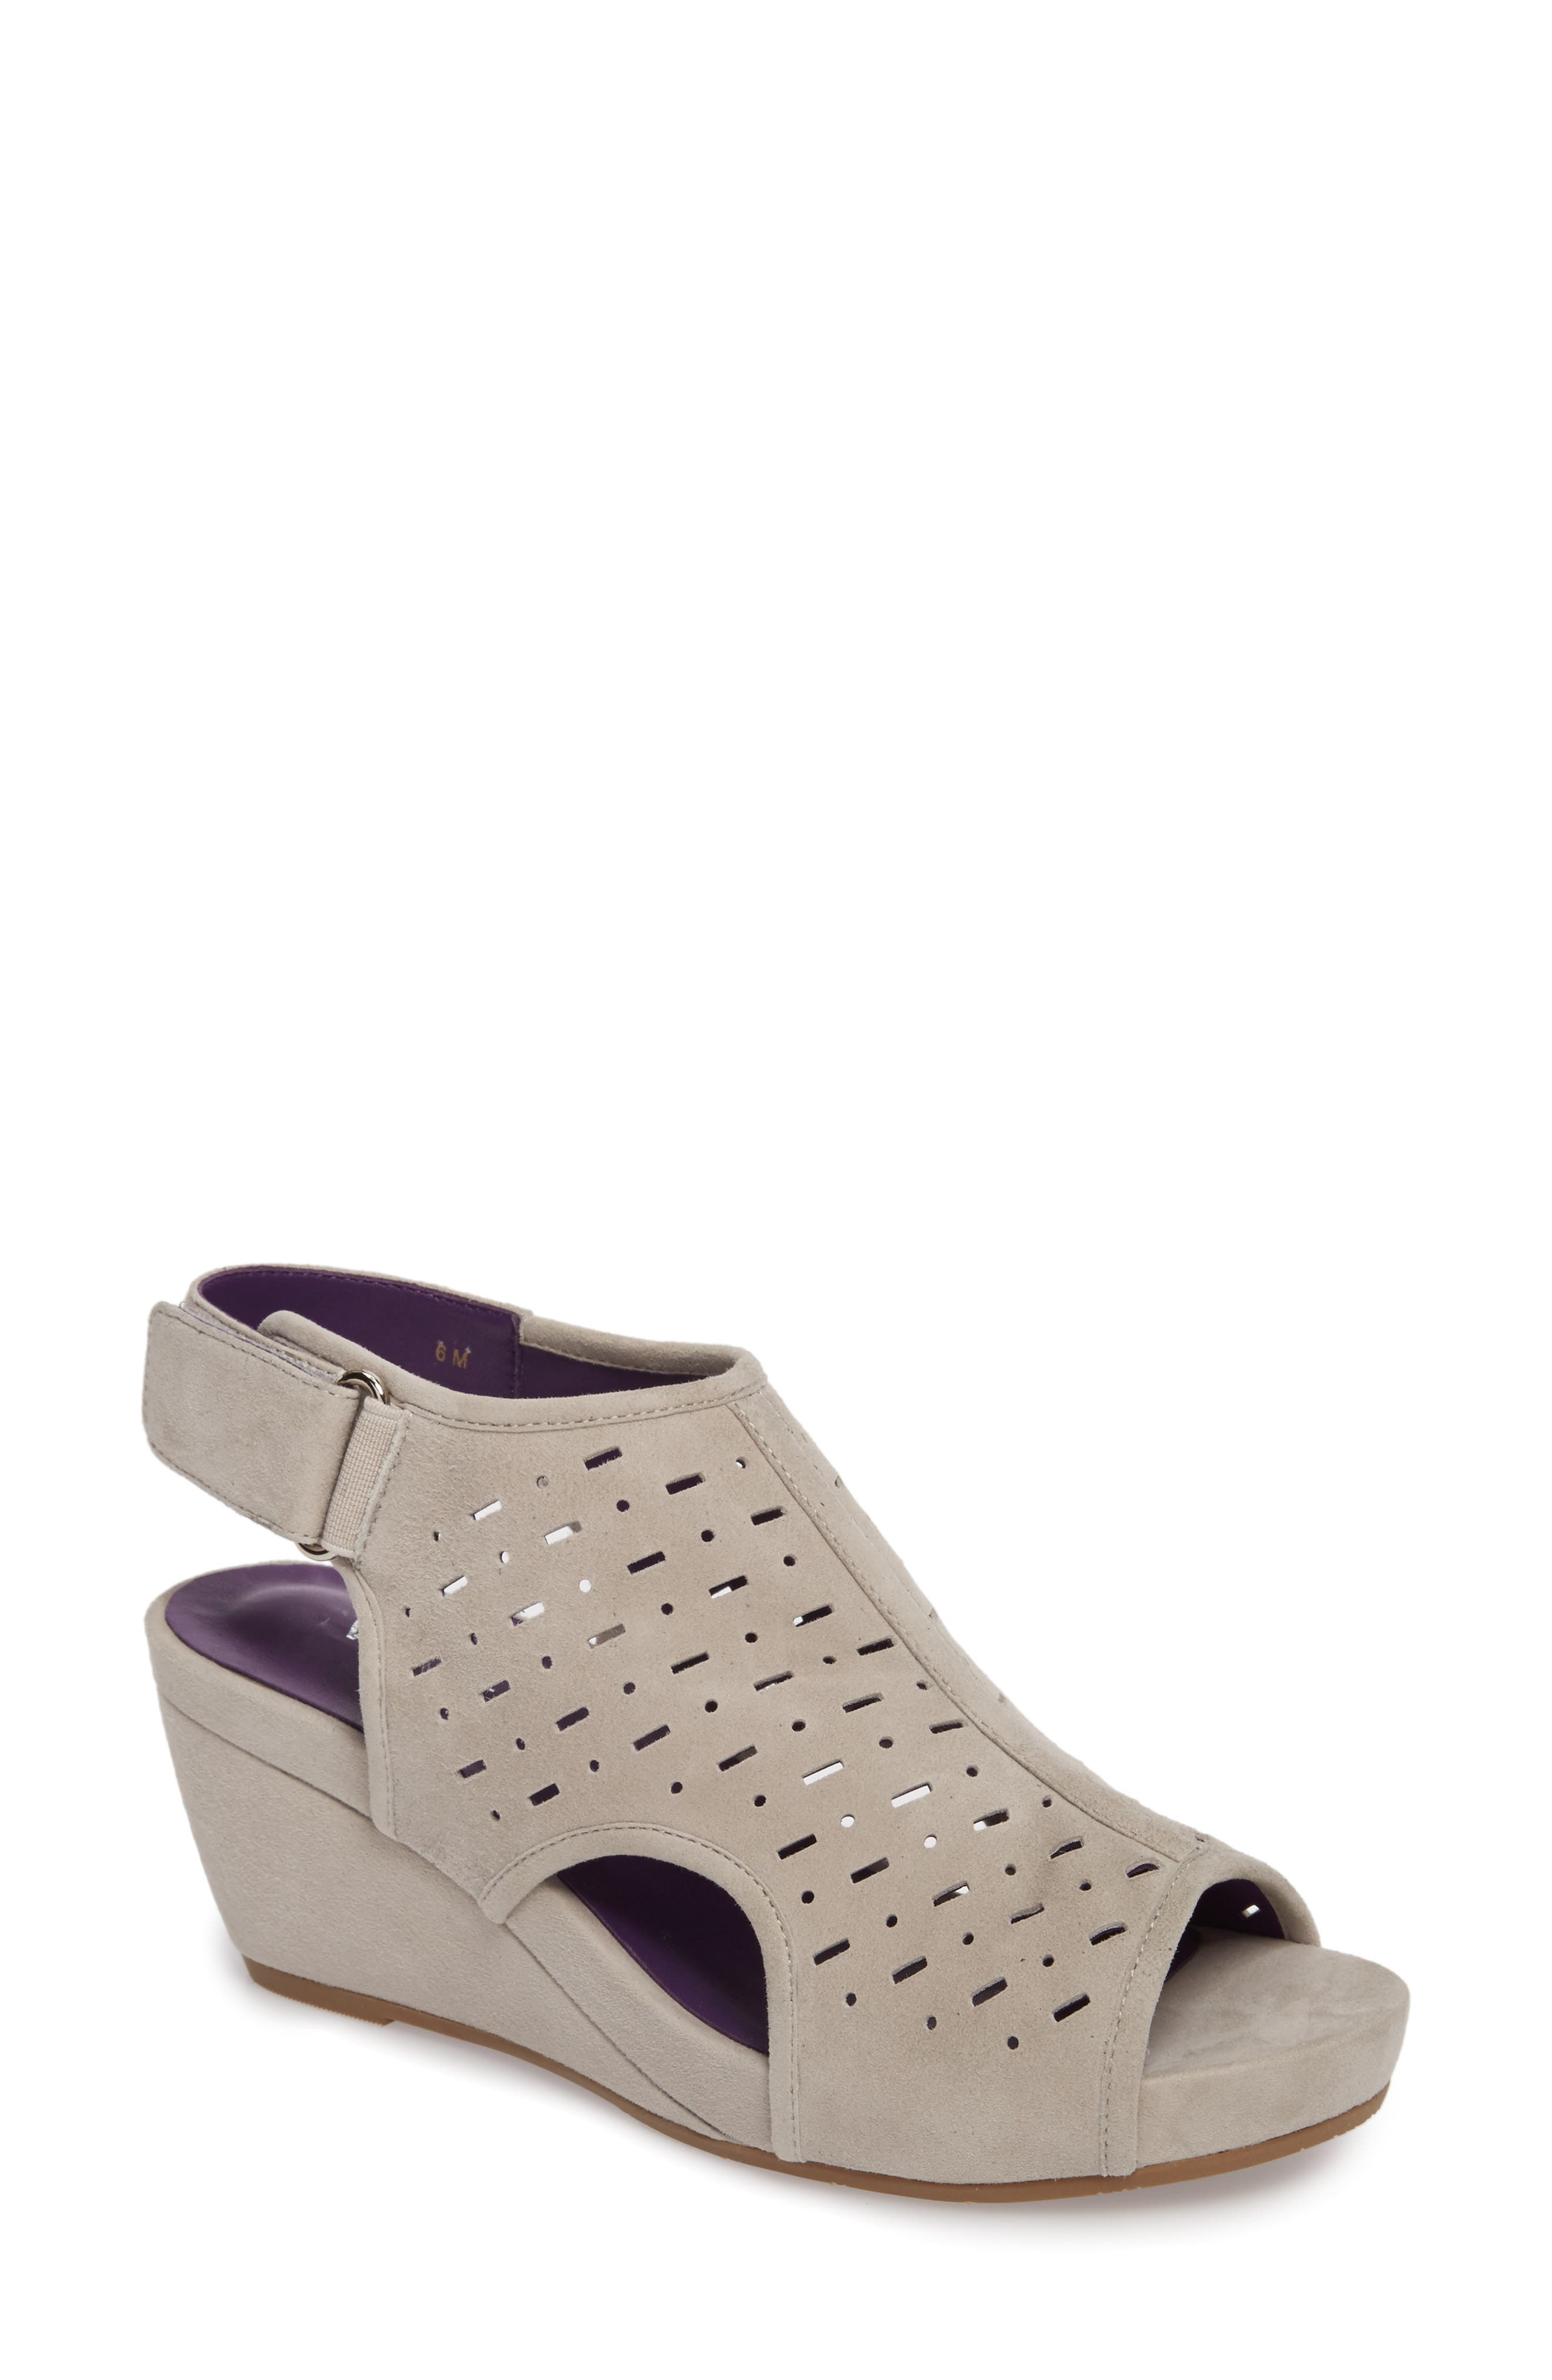 Ibis Wedge,                             Main thumbnail 1, color,                             Dove Suede